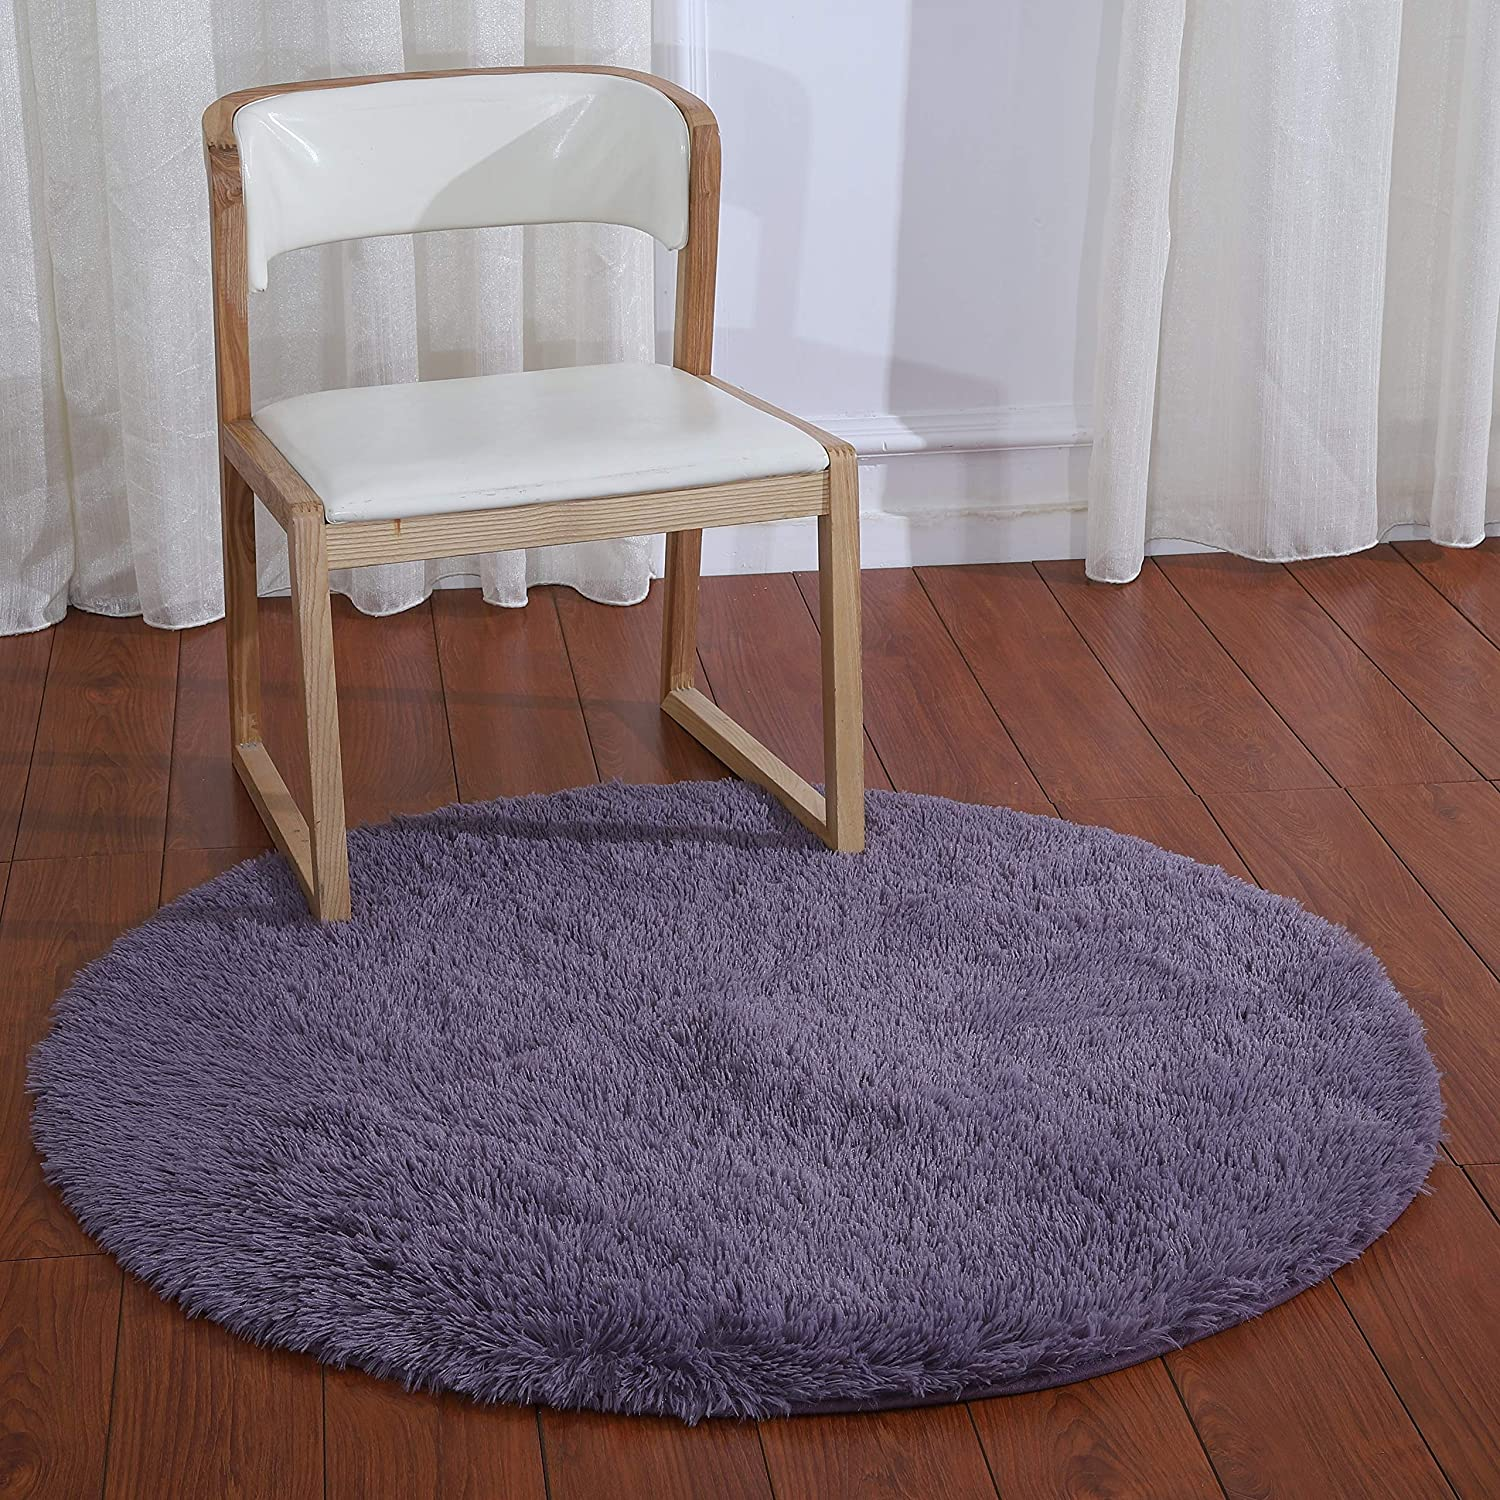 Purple 4-Feet Super Soft Area Rug Daluo New Arrivl Thick Anti-Skid Fluffy Round Children Area Rug for Living Room Bedroom Kids Room Nursery